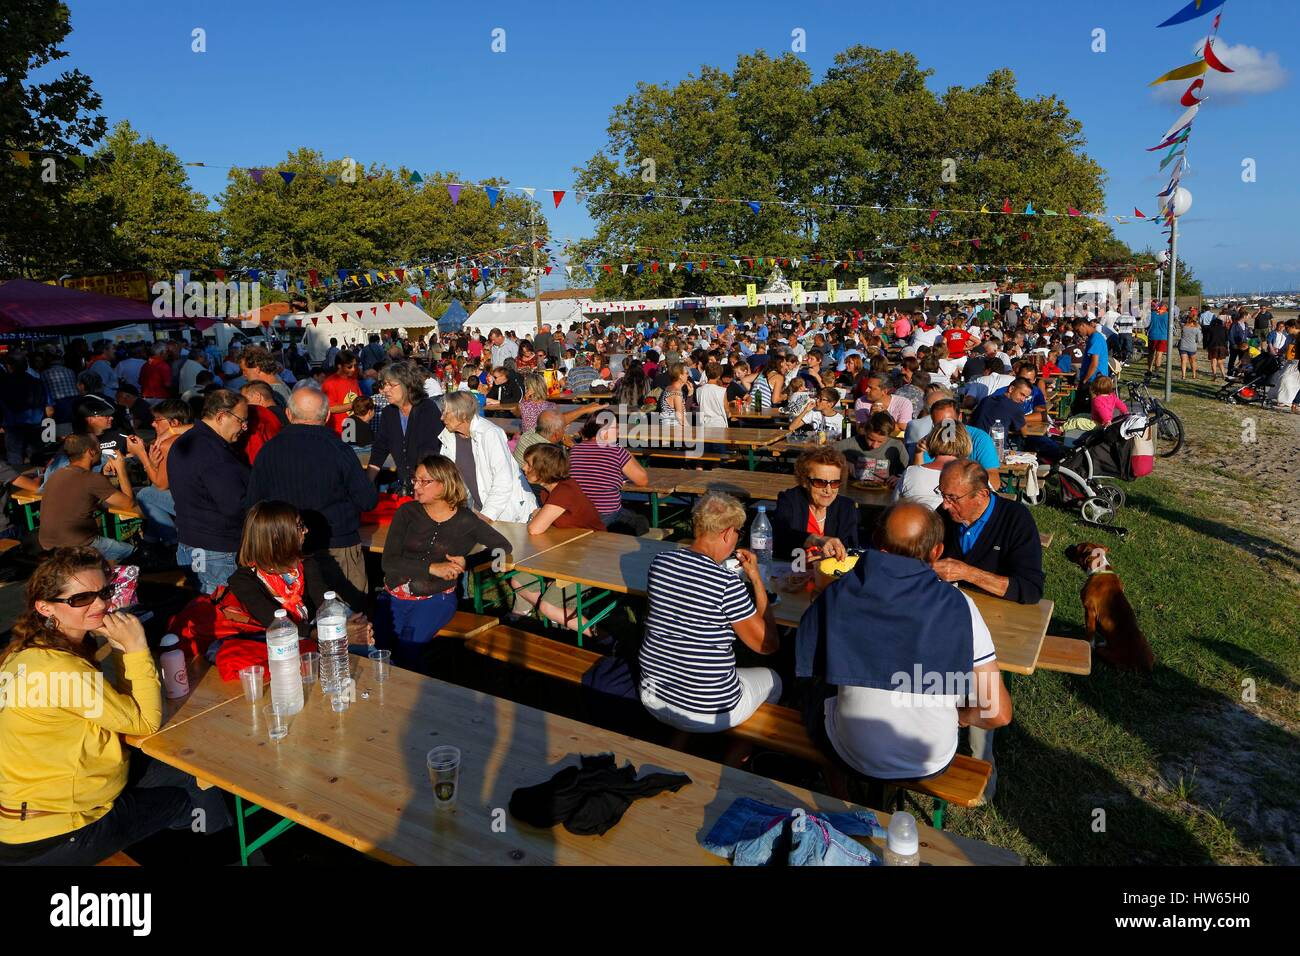 France, Gironde, Bassin d'Arcachon, Ares, Oyster festival - Stock Image